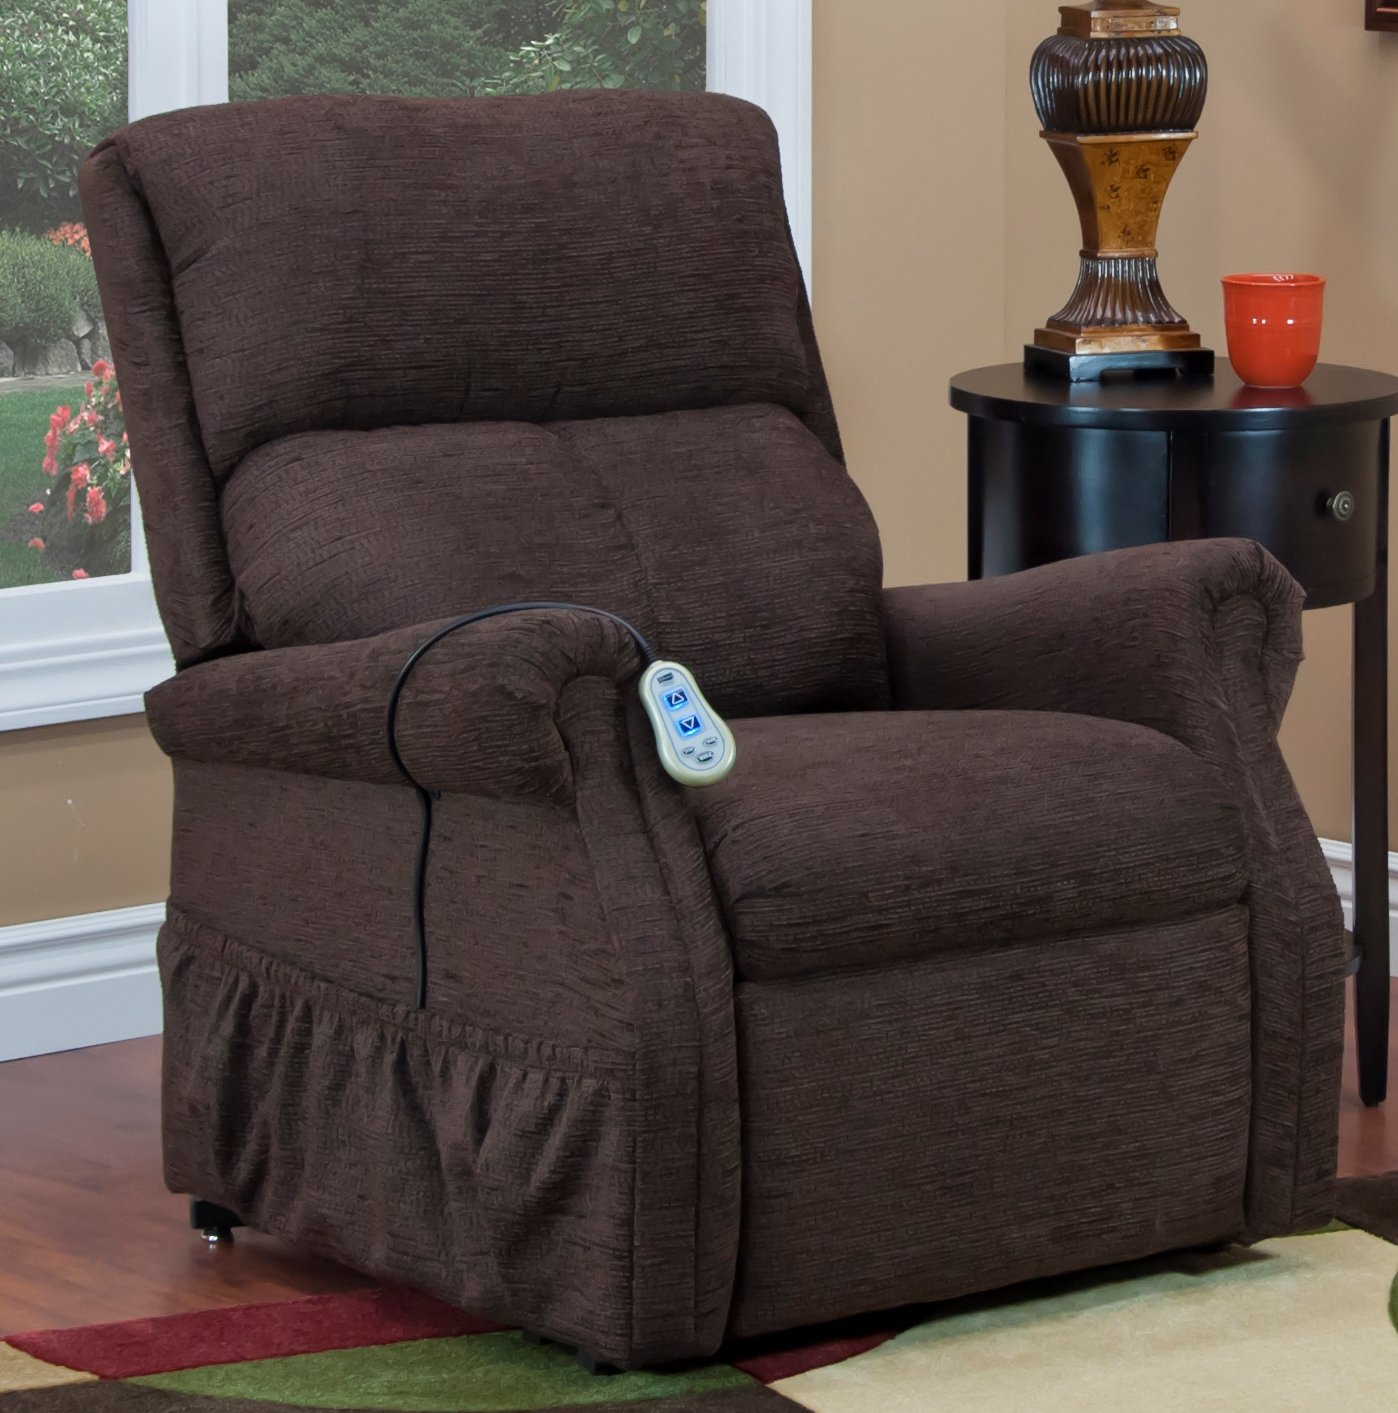 Med-Lift 11 Series 2 Way Reclining Lift Chair, Chocolate, Vibration and Heat, 135 Pound